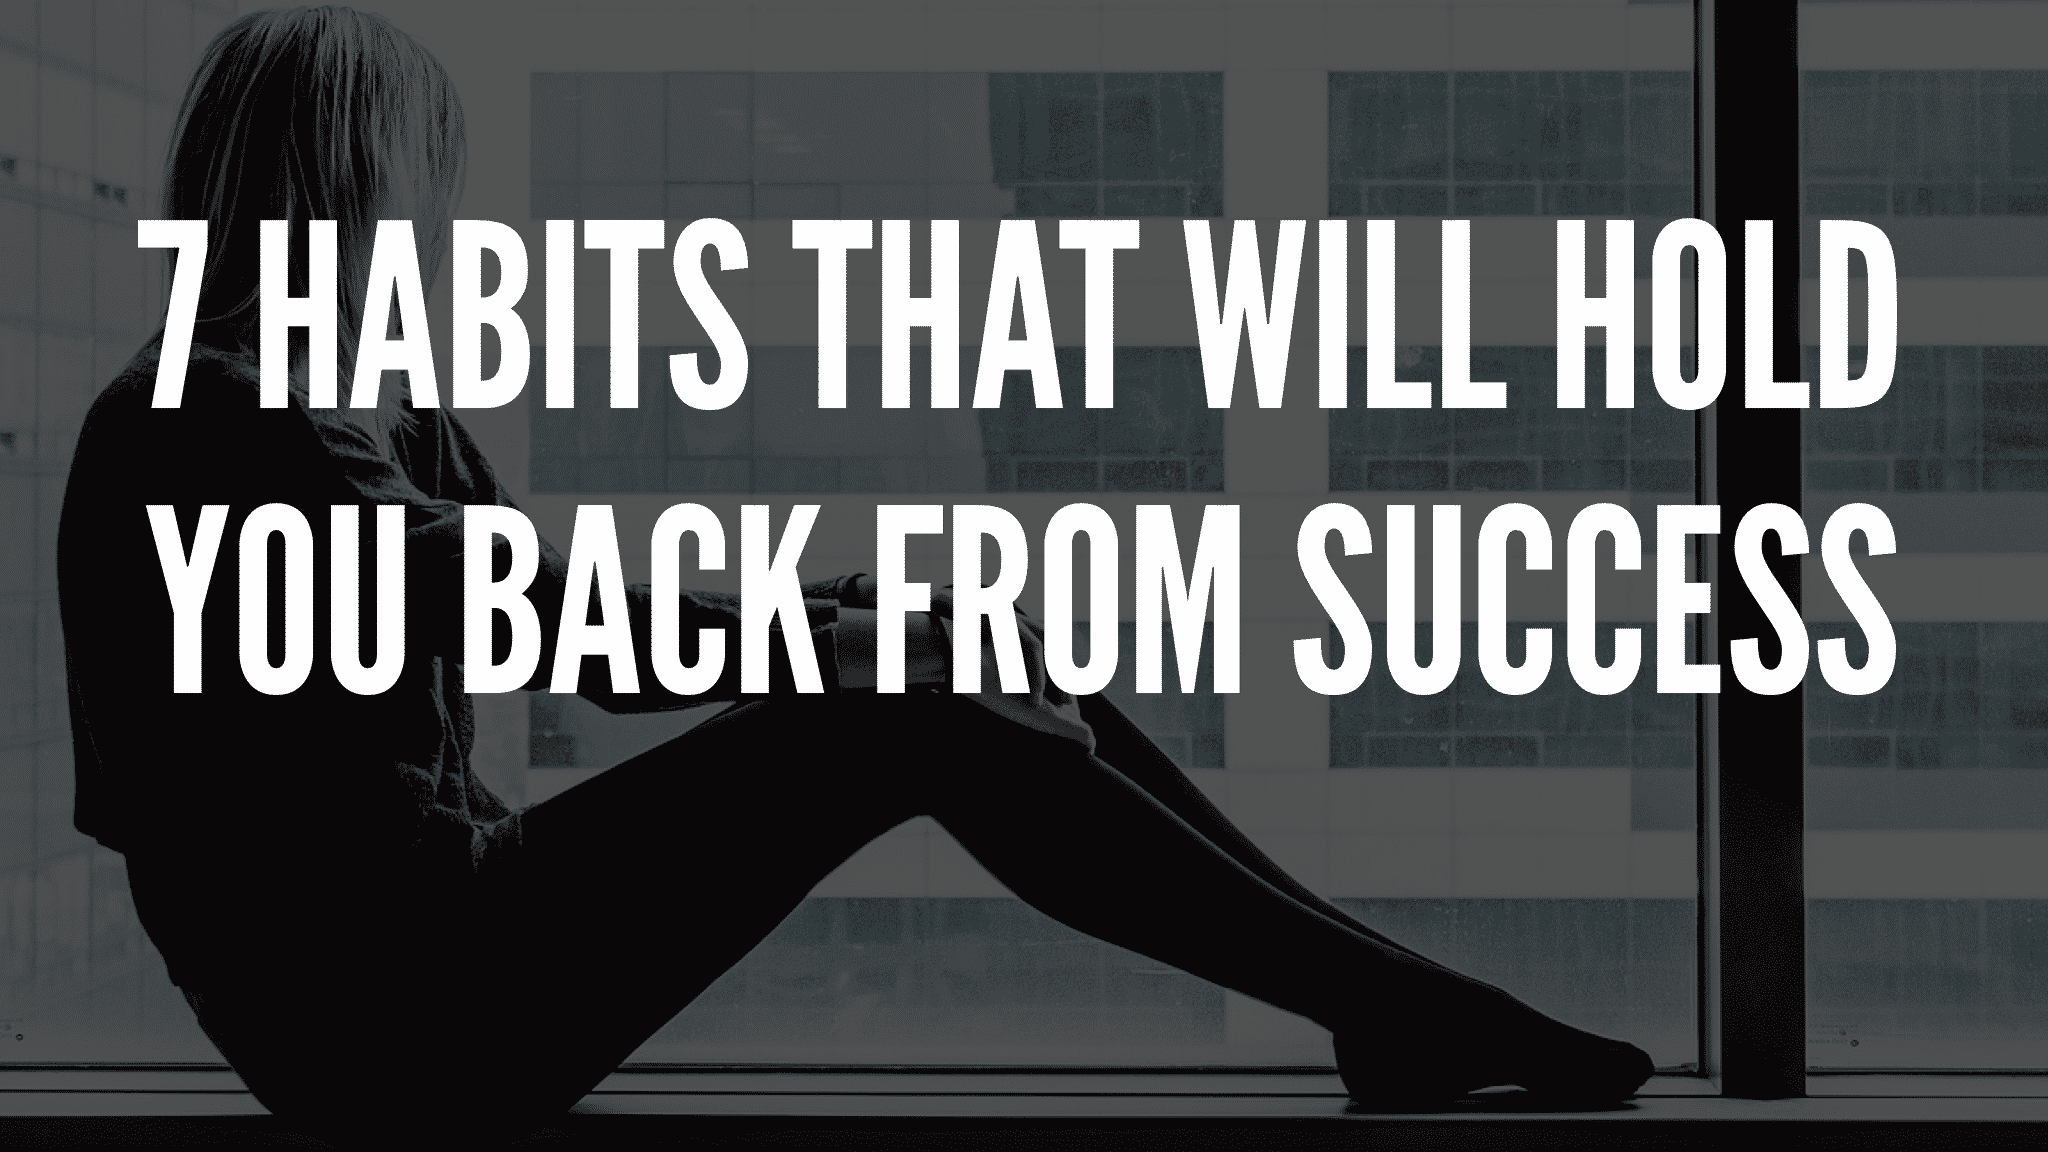 7 Habits That Will Hold You Back From Success